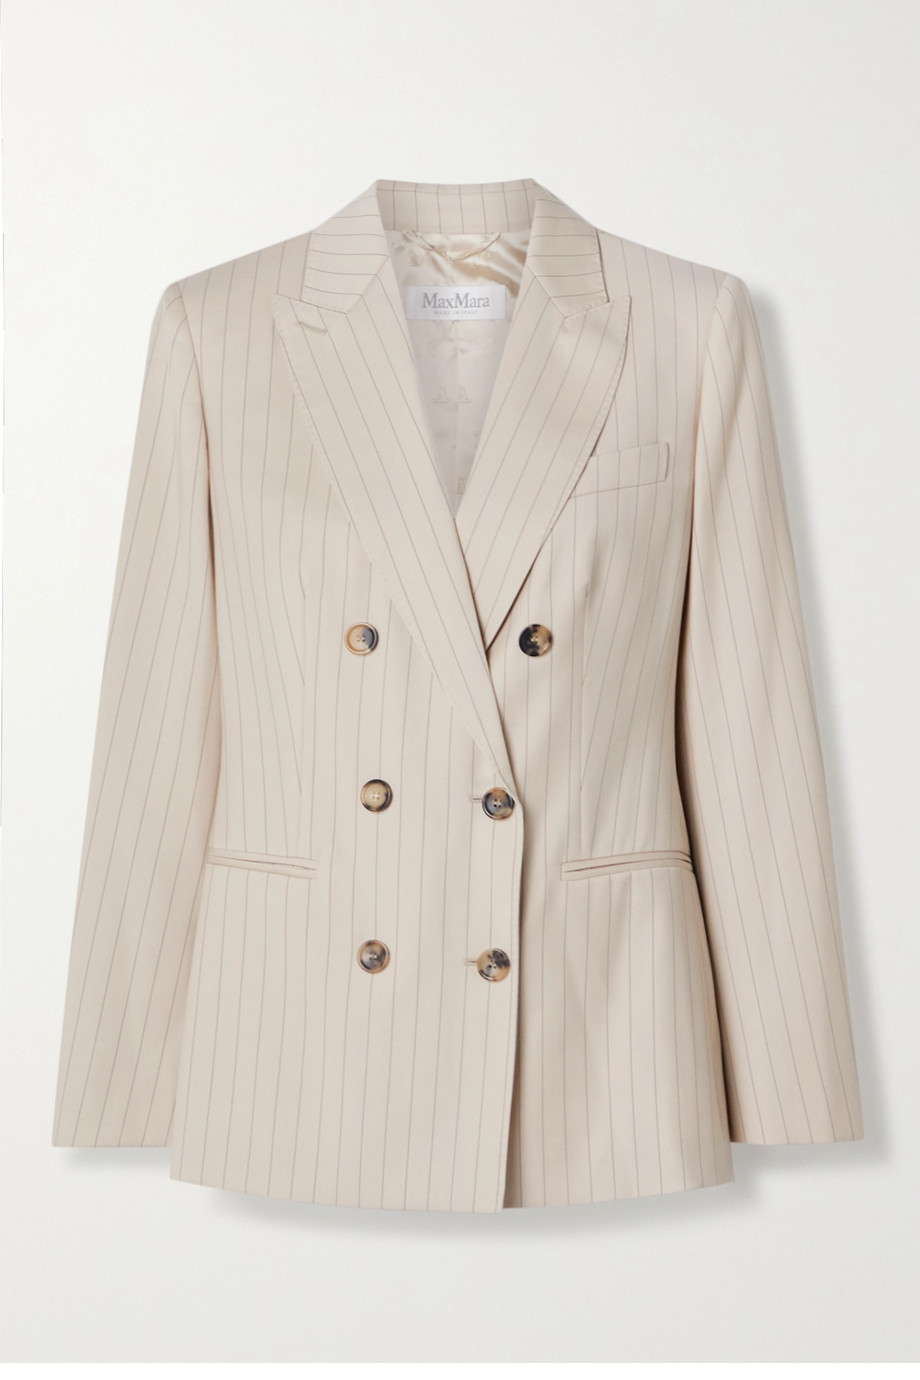 Max Mara Zinco double-breasted pinstriped wool-twill blazer